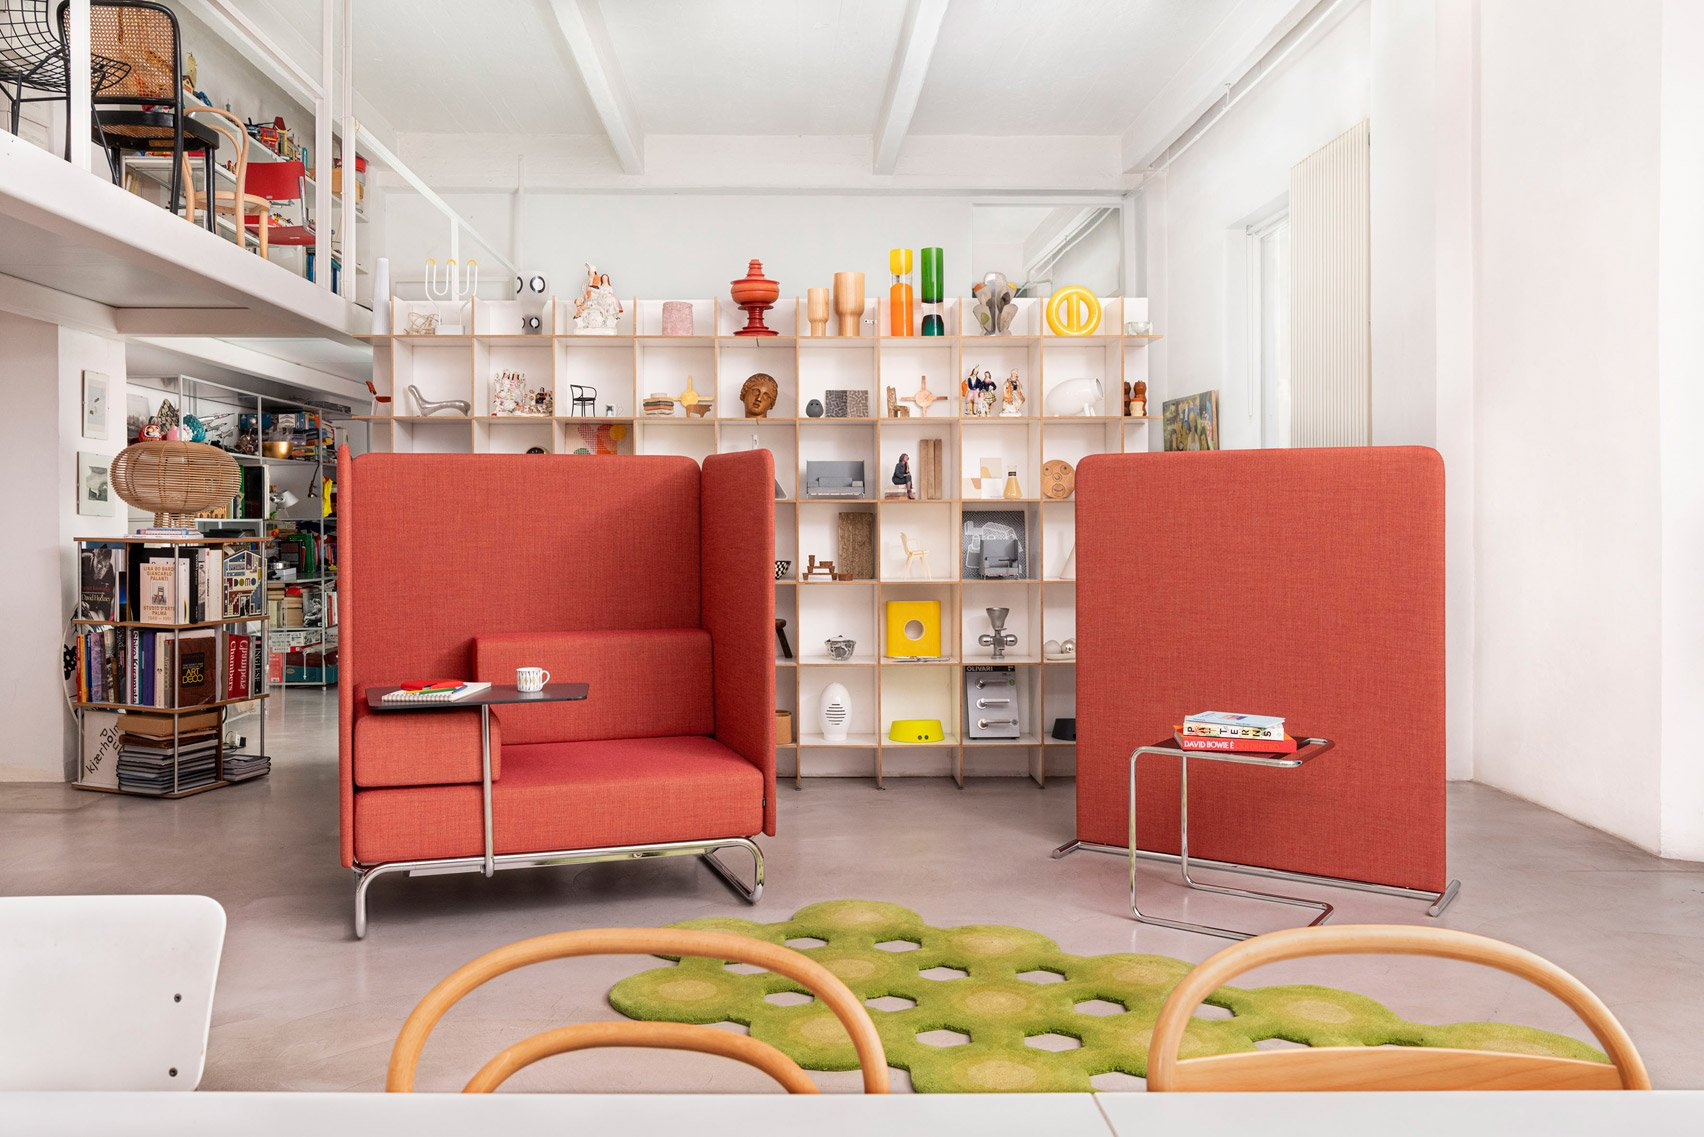 Chair and privacy screen from S 5000 Retreat by Studio Irvine for Thonet